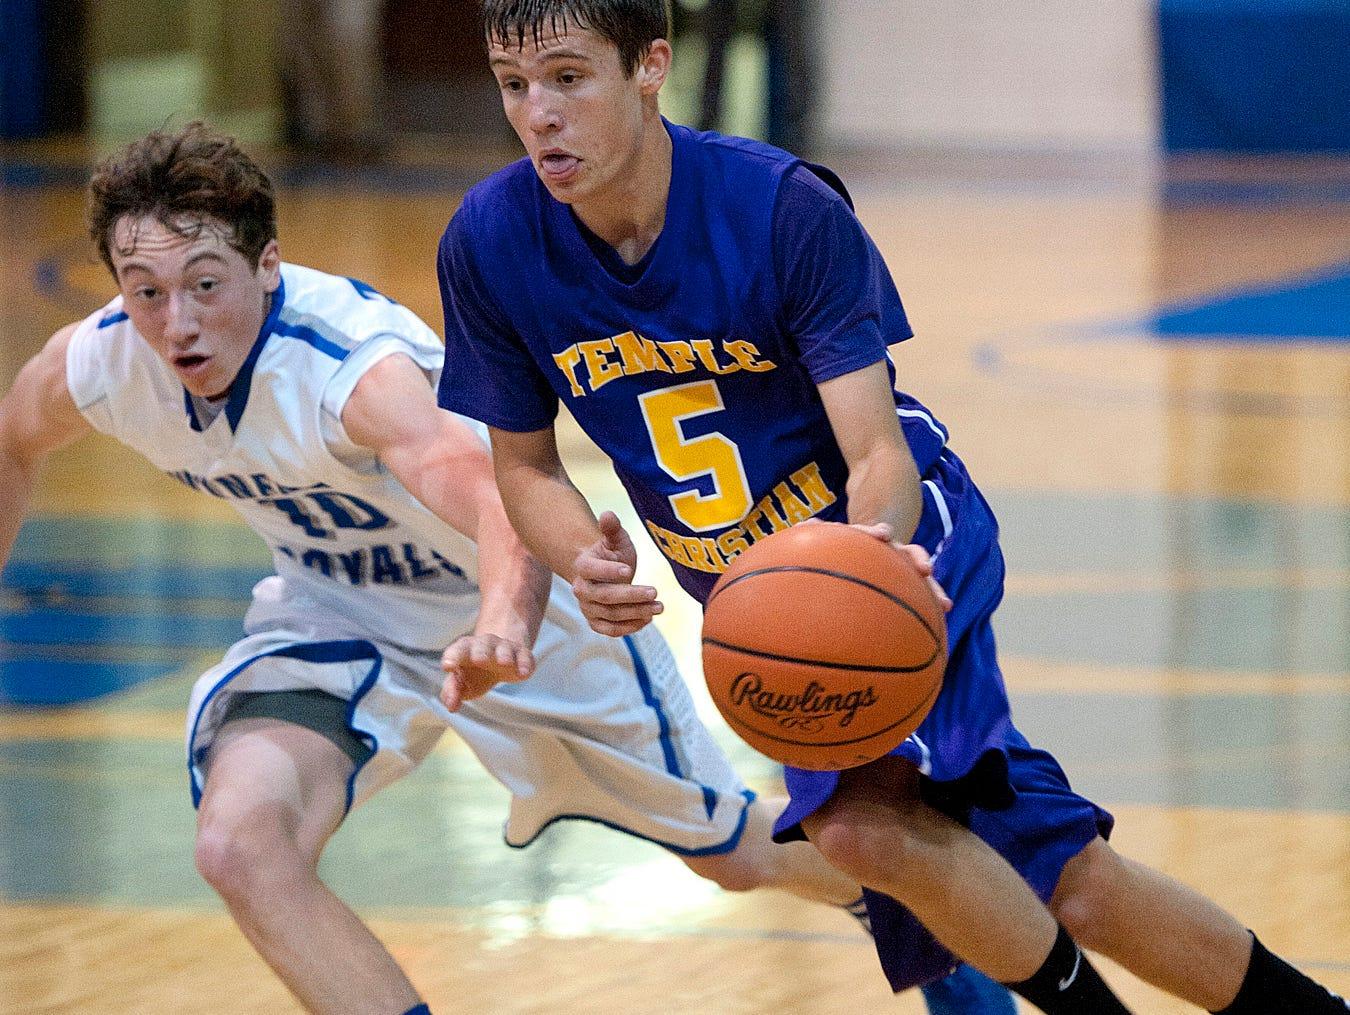 Temple Christian guard Darien Davis runs the ball downcourt with Wynford's Jack Reed in pursuit.